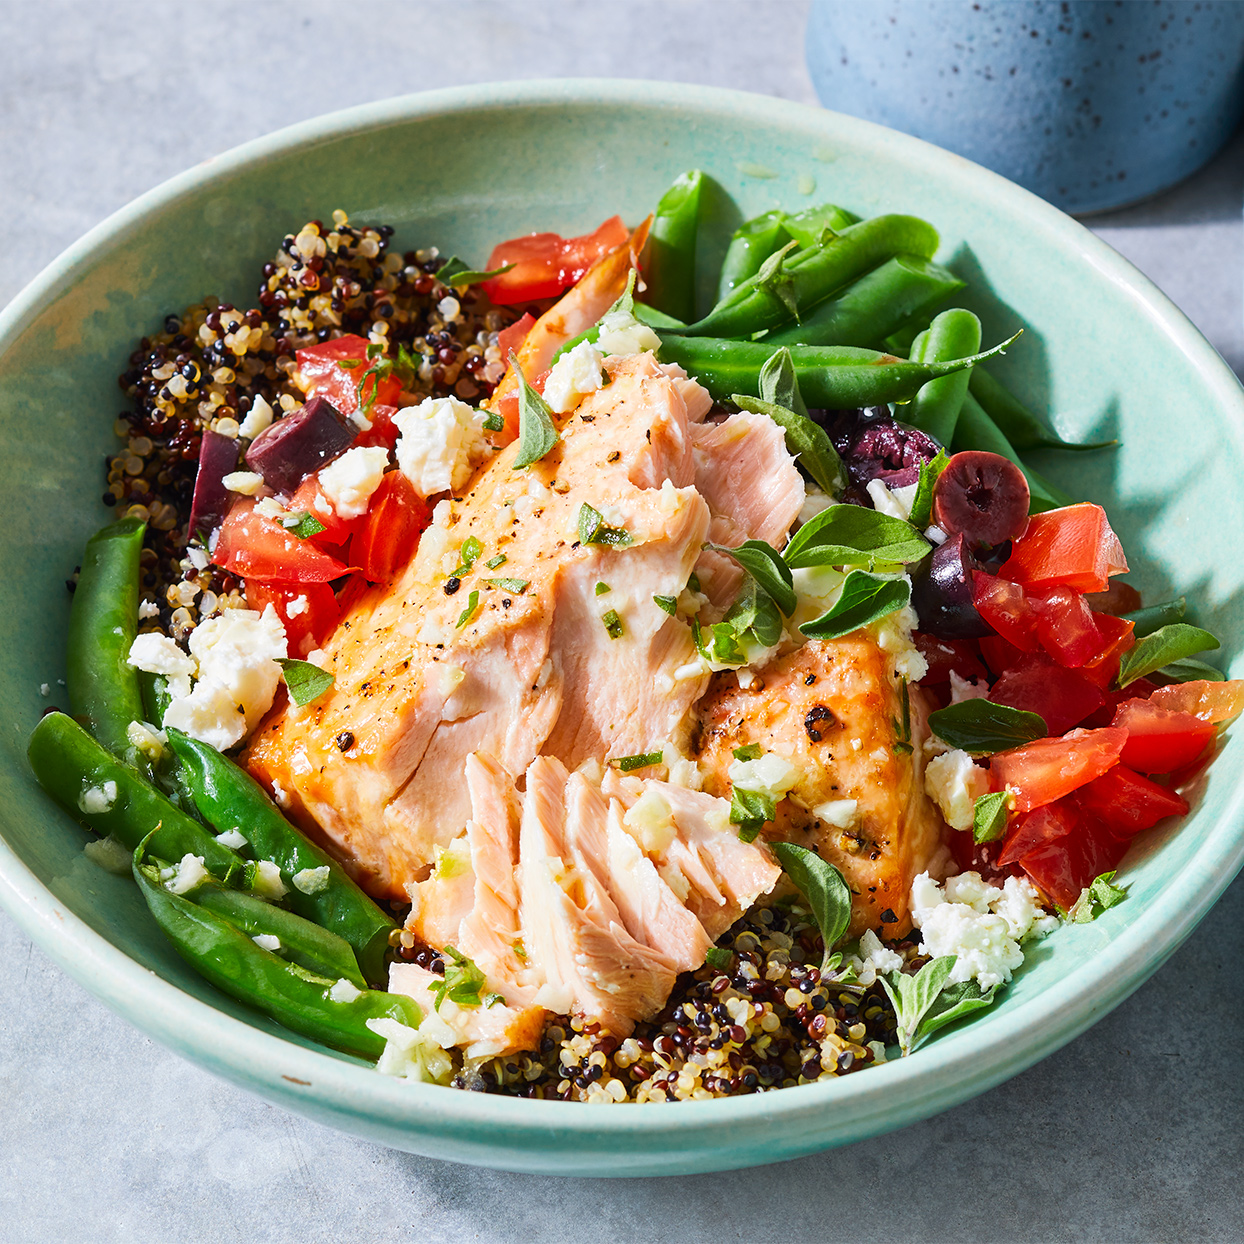 Greek Salmon Bowl Trusted Brands